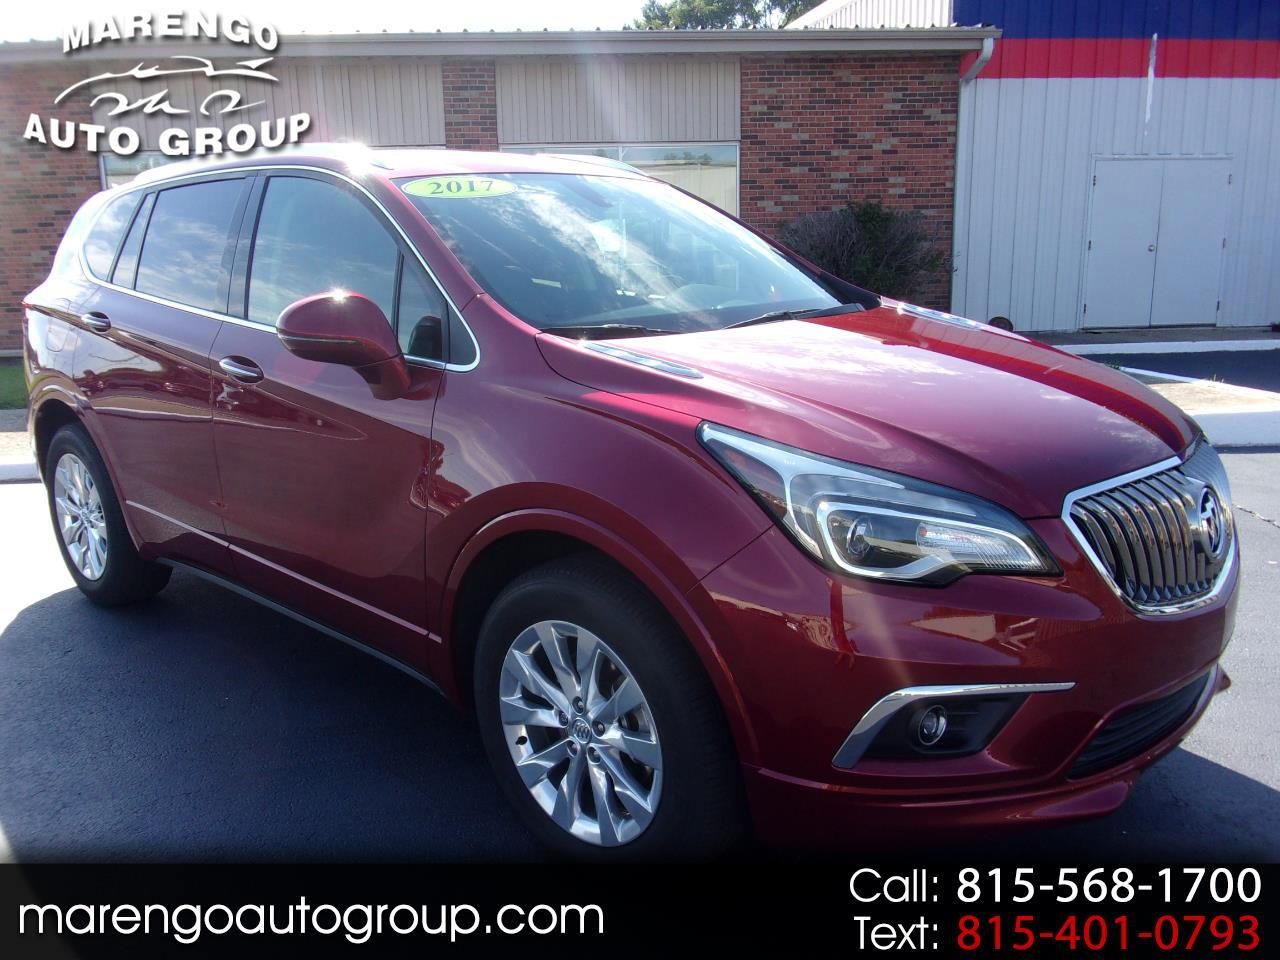 used 2017 Buick Envision car, priced at $24,996